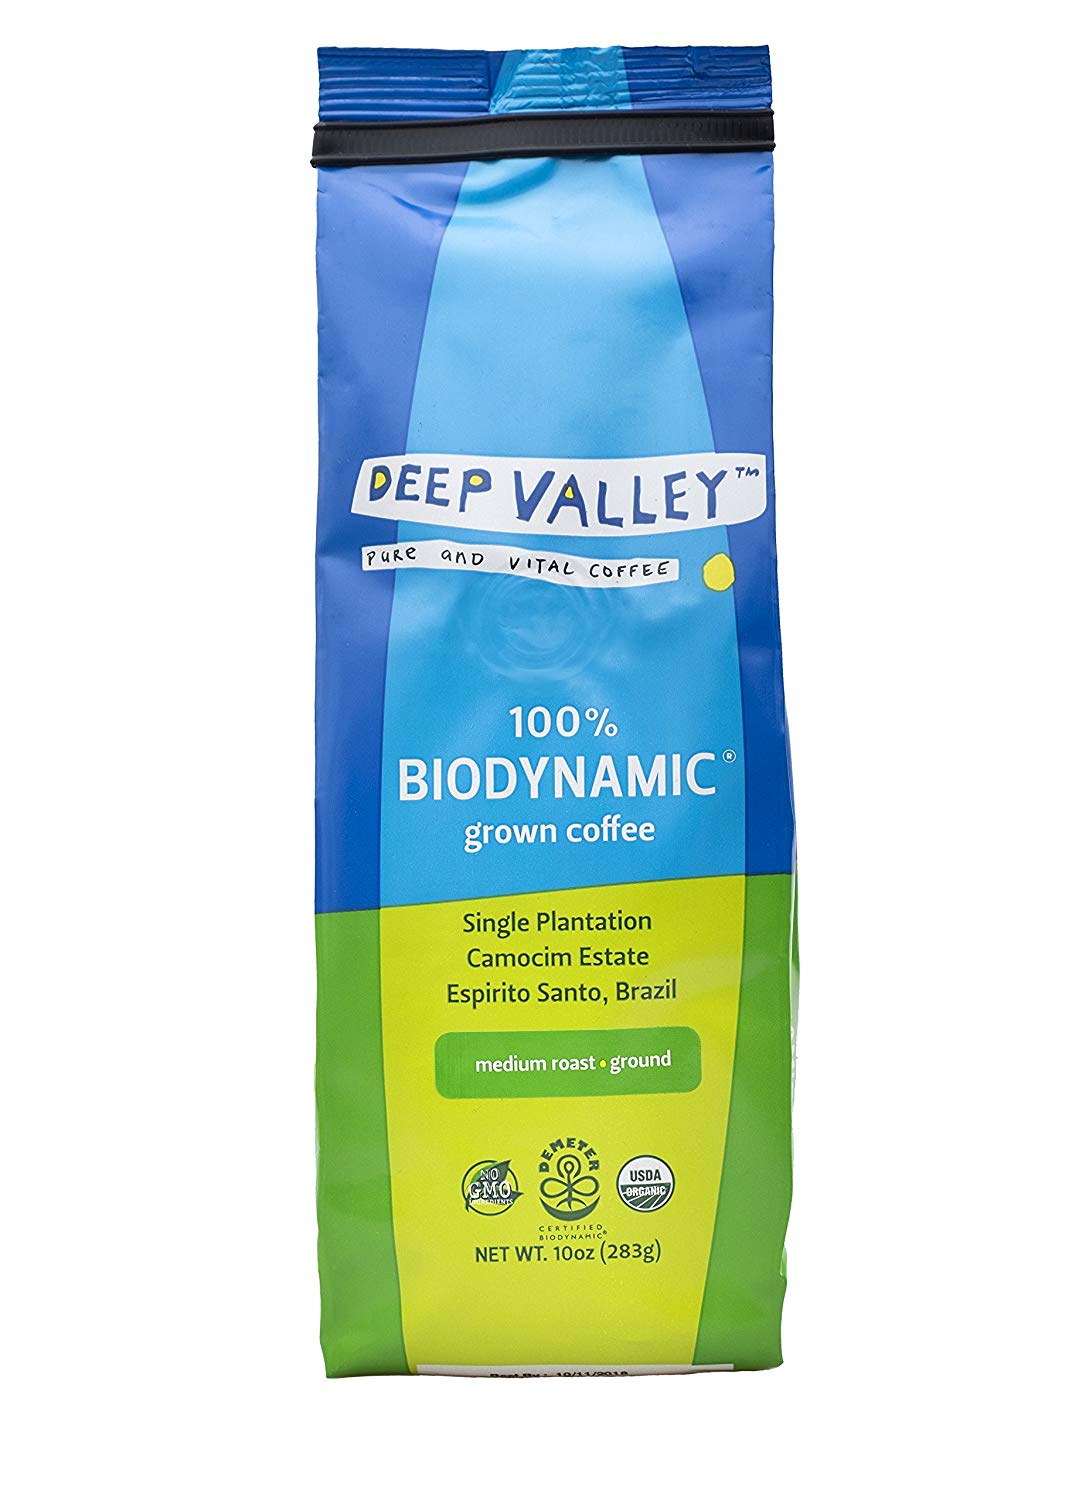 DEEP VALLEY Certified Biodynamic Organic Ground Coffee, Medium Roast, NON-GMO, Sourced from Single Origin Sustainable farm, 10 oz bag